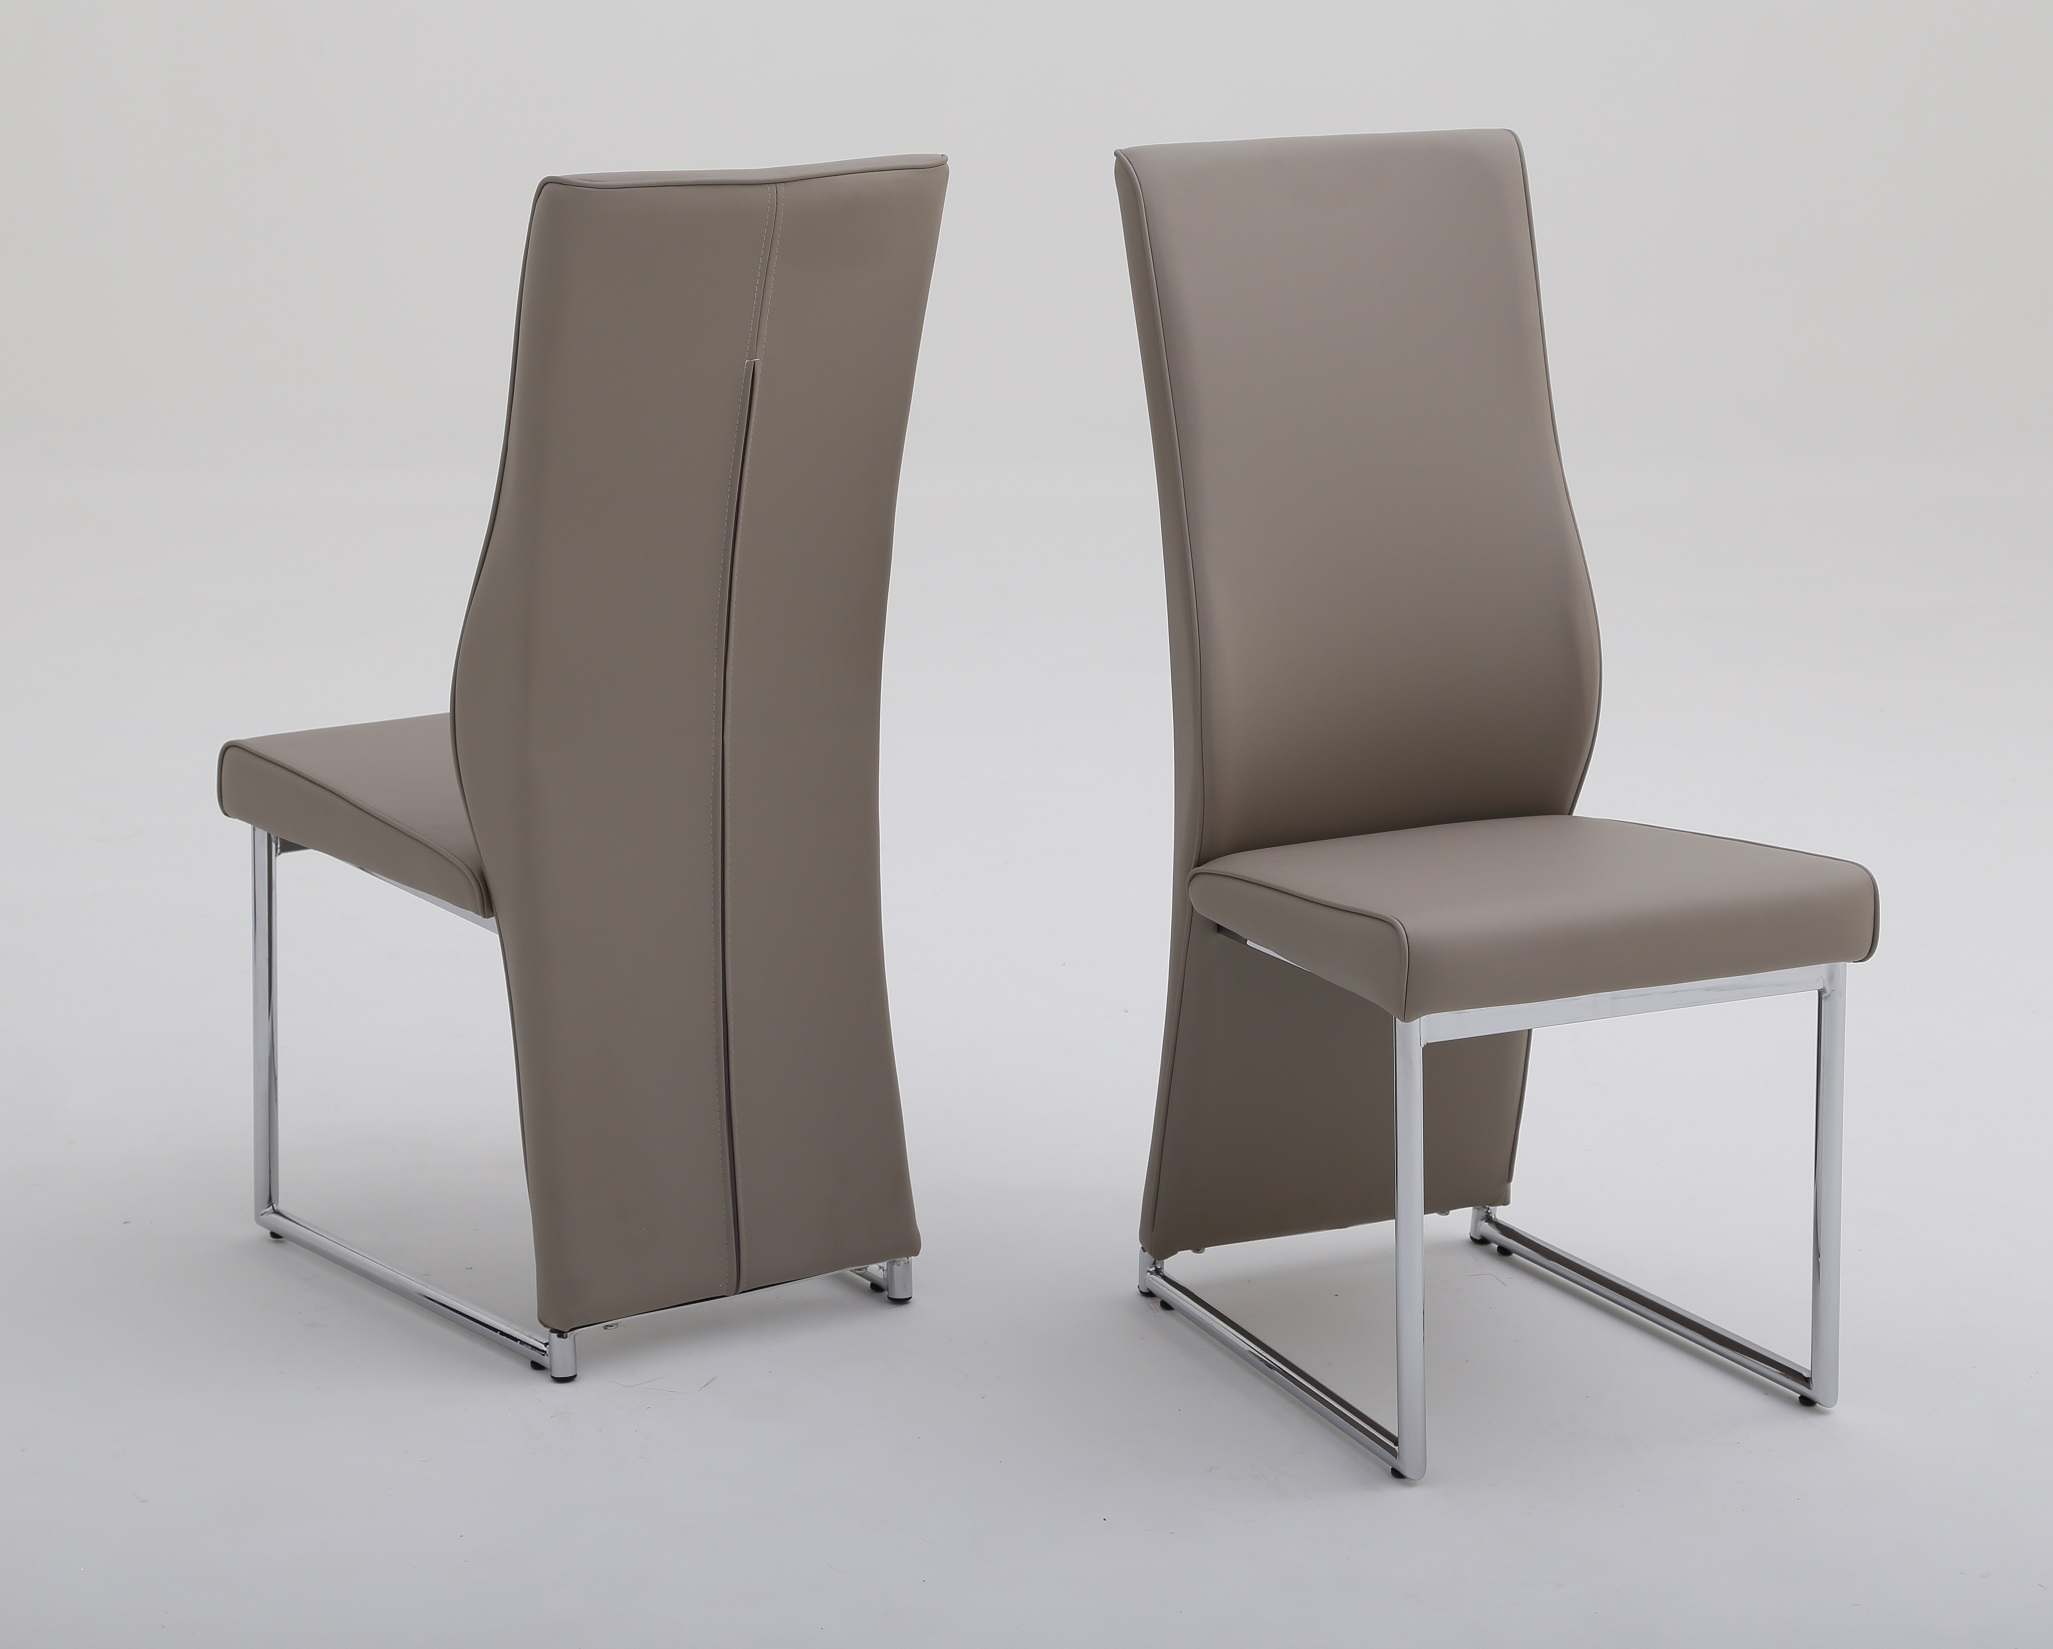 https://www.firstfurniture.co.uk/pub/media/catalog/product/r/e/remo_chair_taupe.jpg